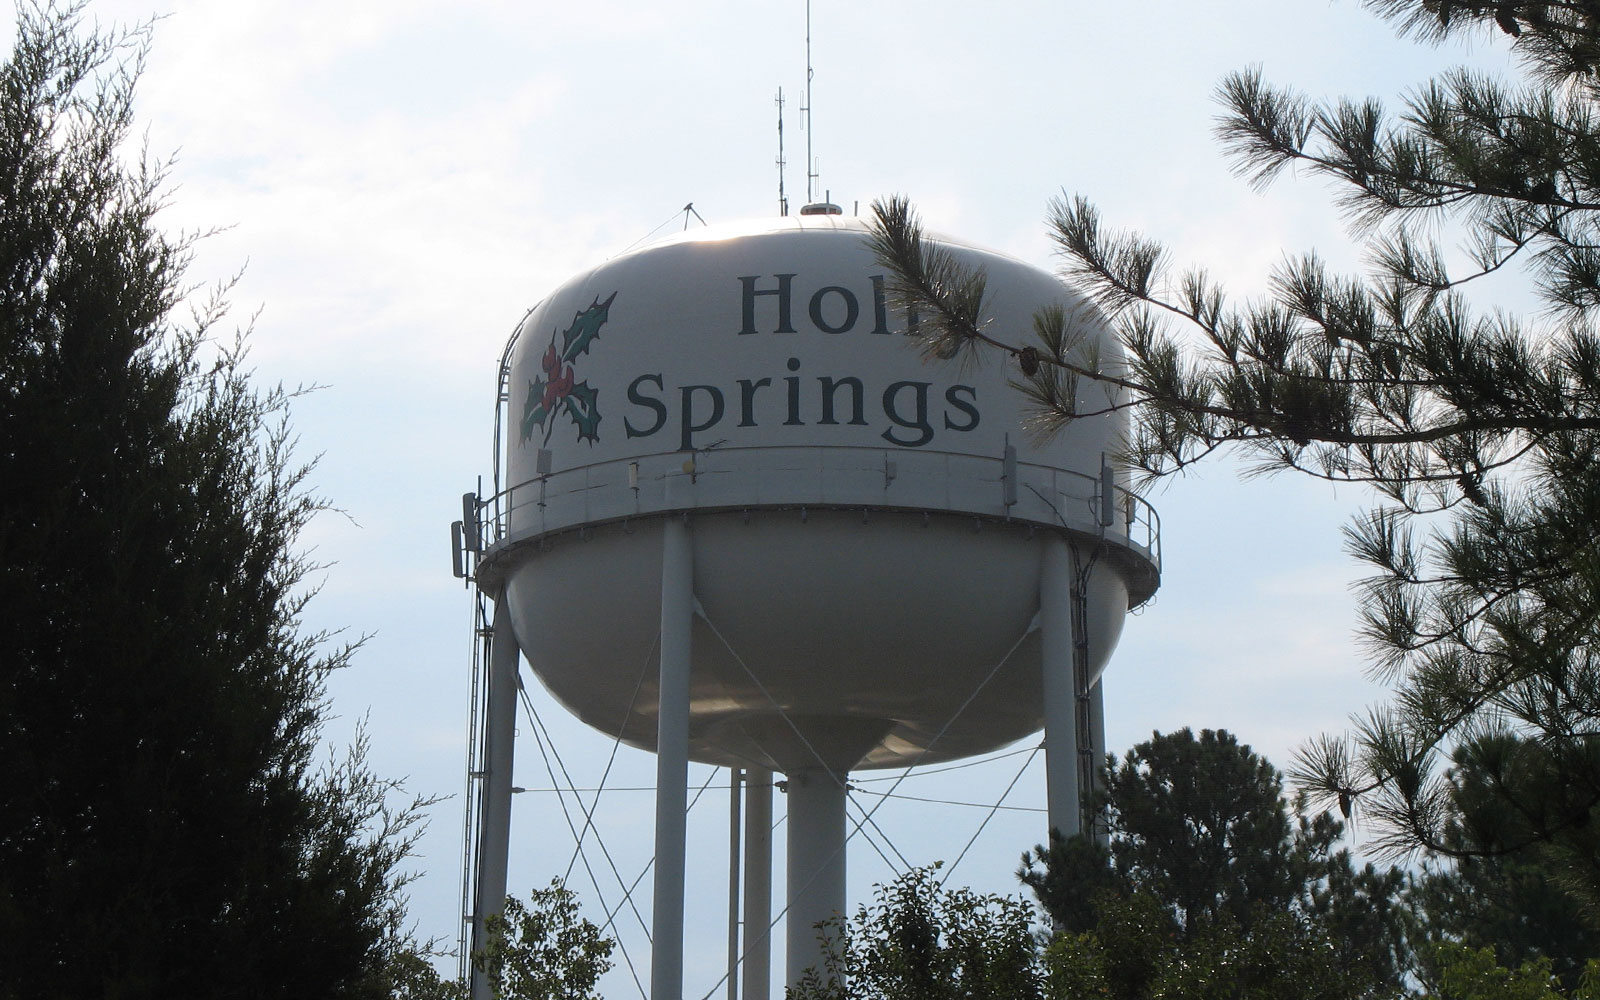 Relocationg to Holly Springs?